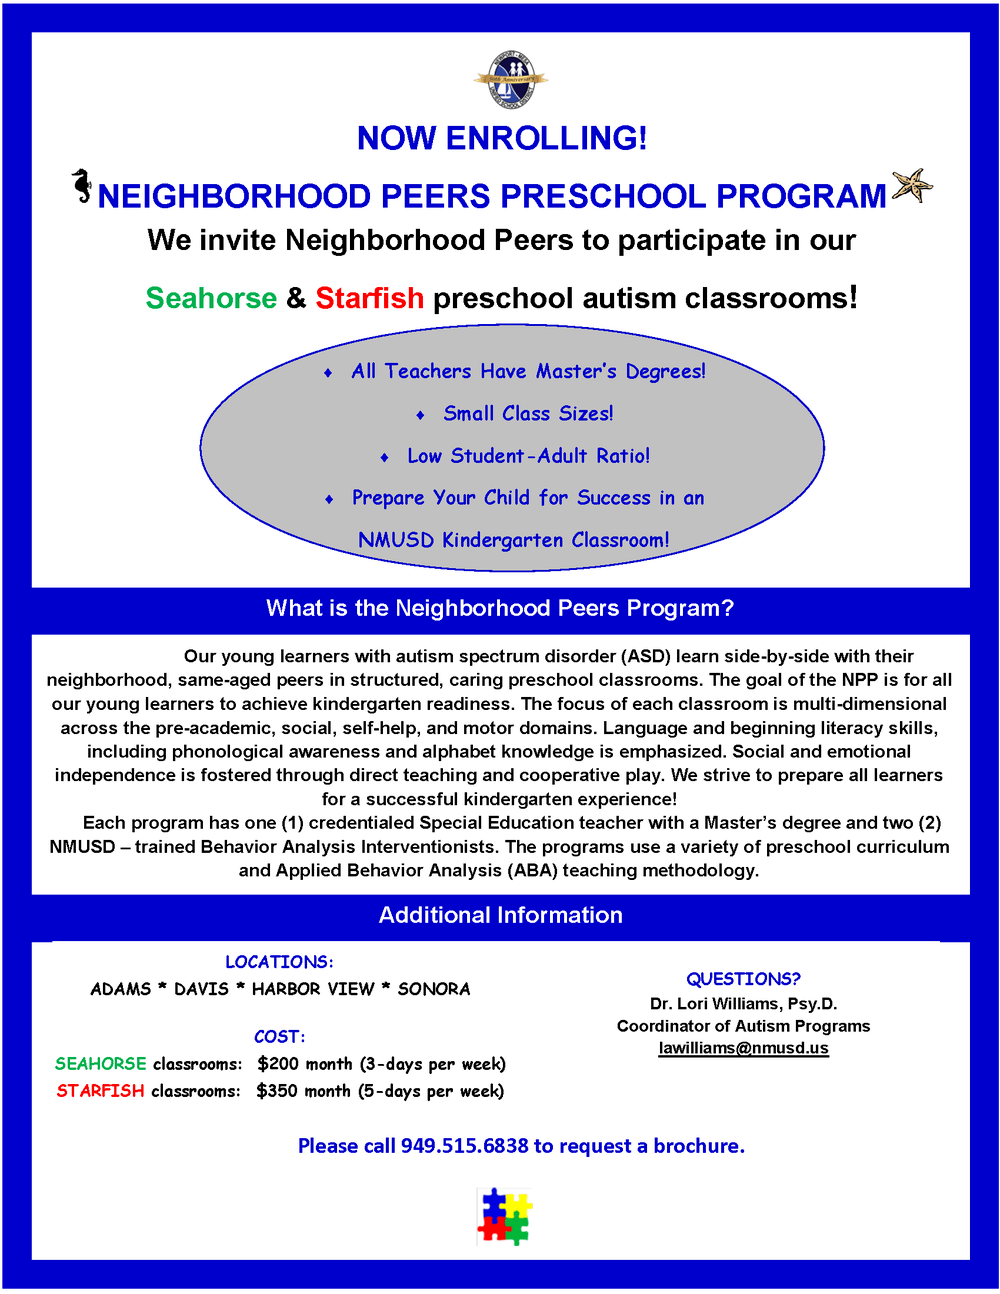 Neighborhood Peers Preschool Program Flyer